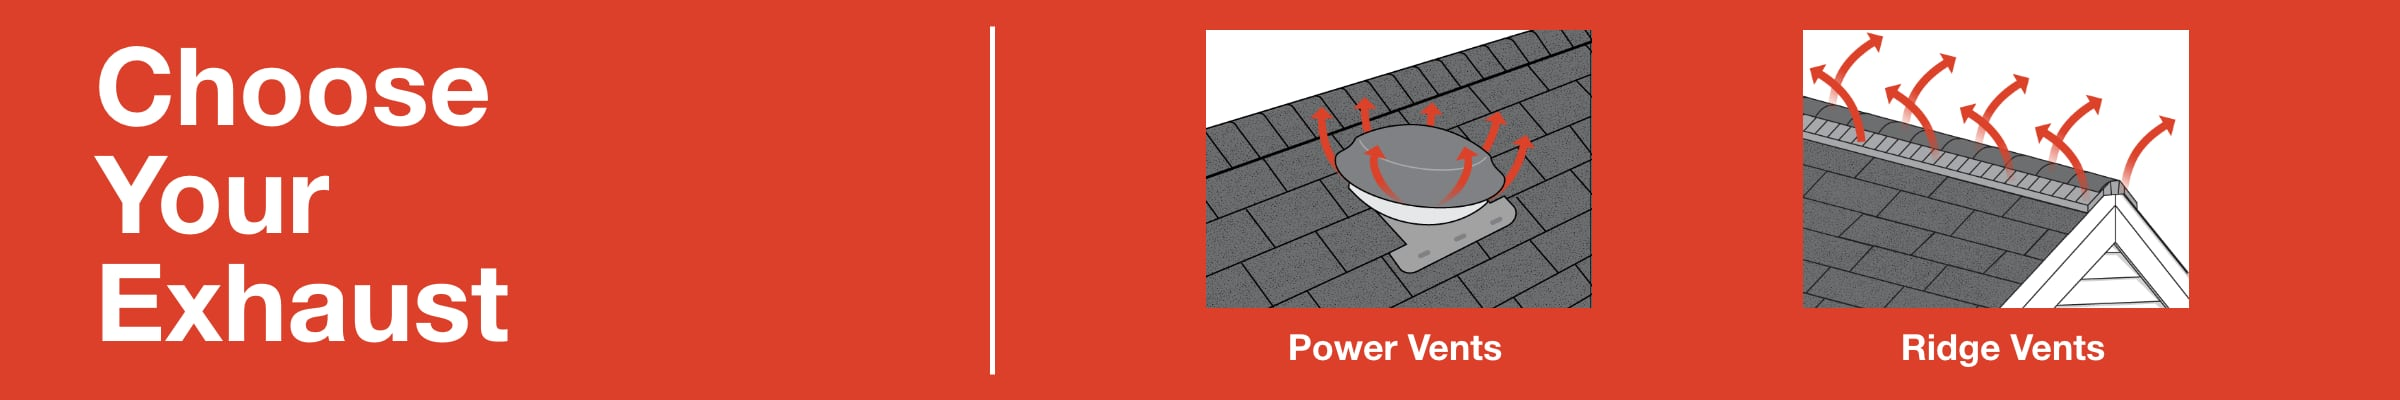 Choose your exhaust - graphic detailing types of roofing exhaust vents